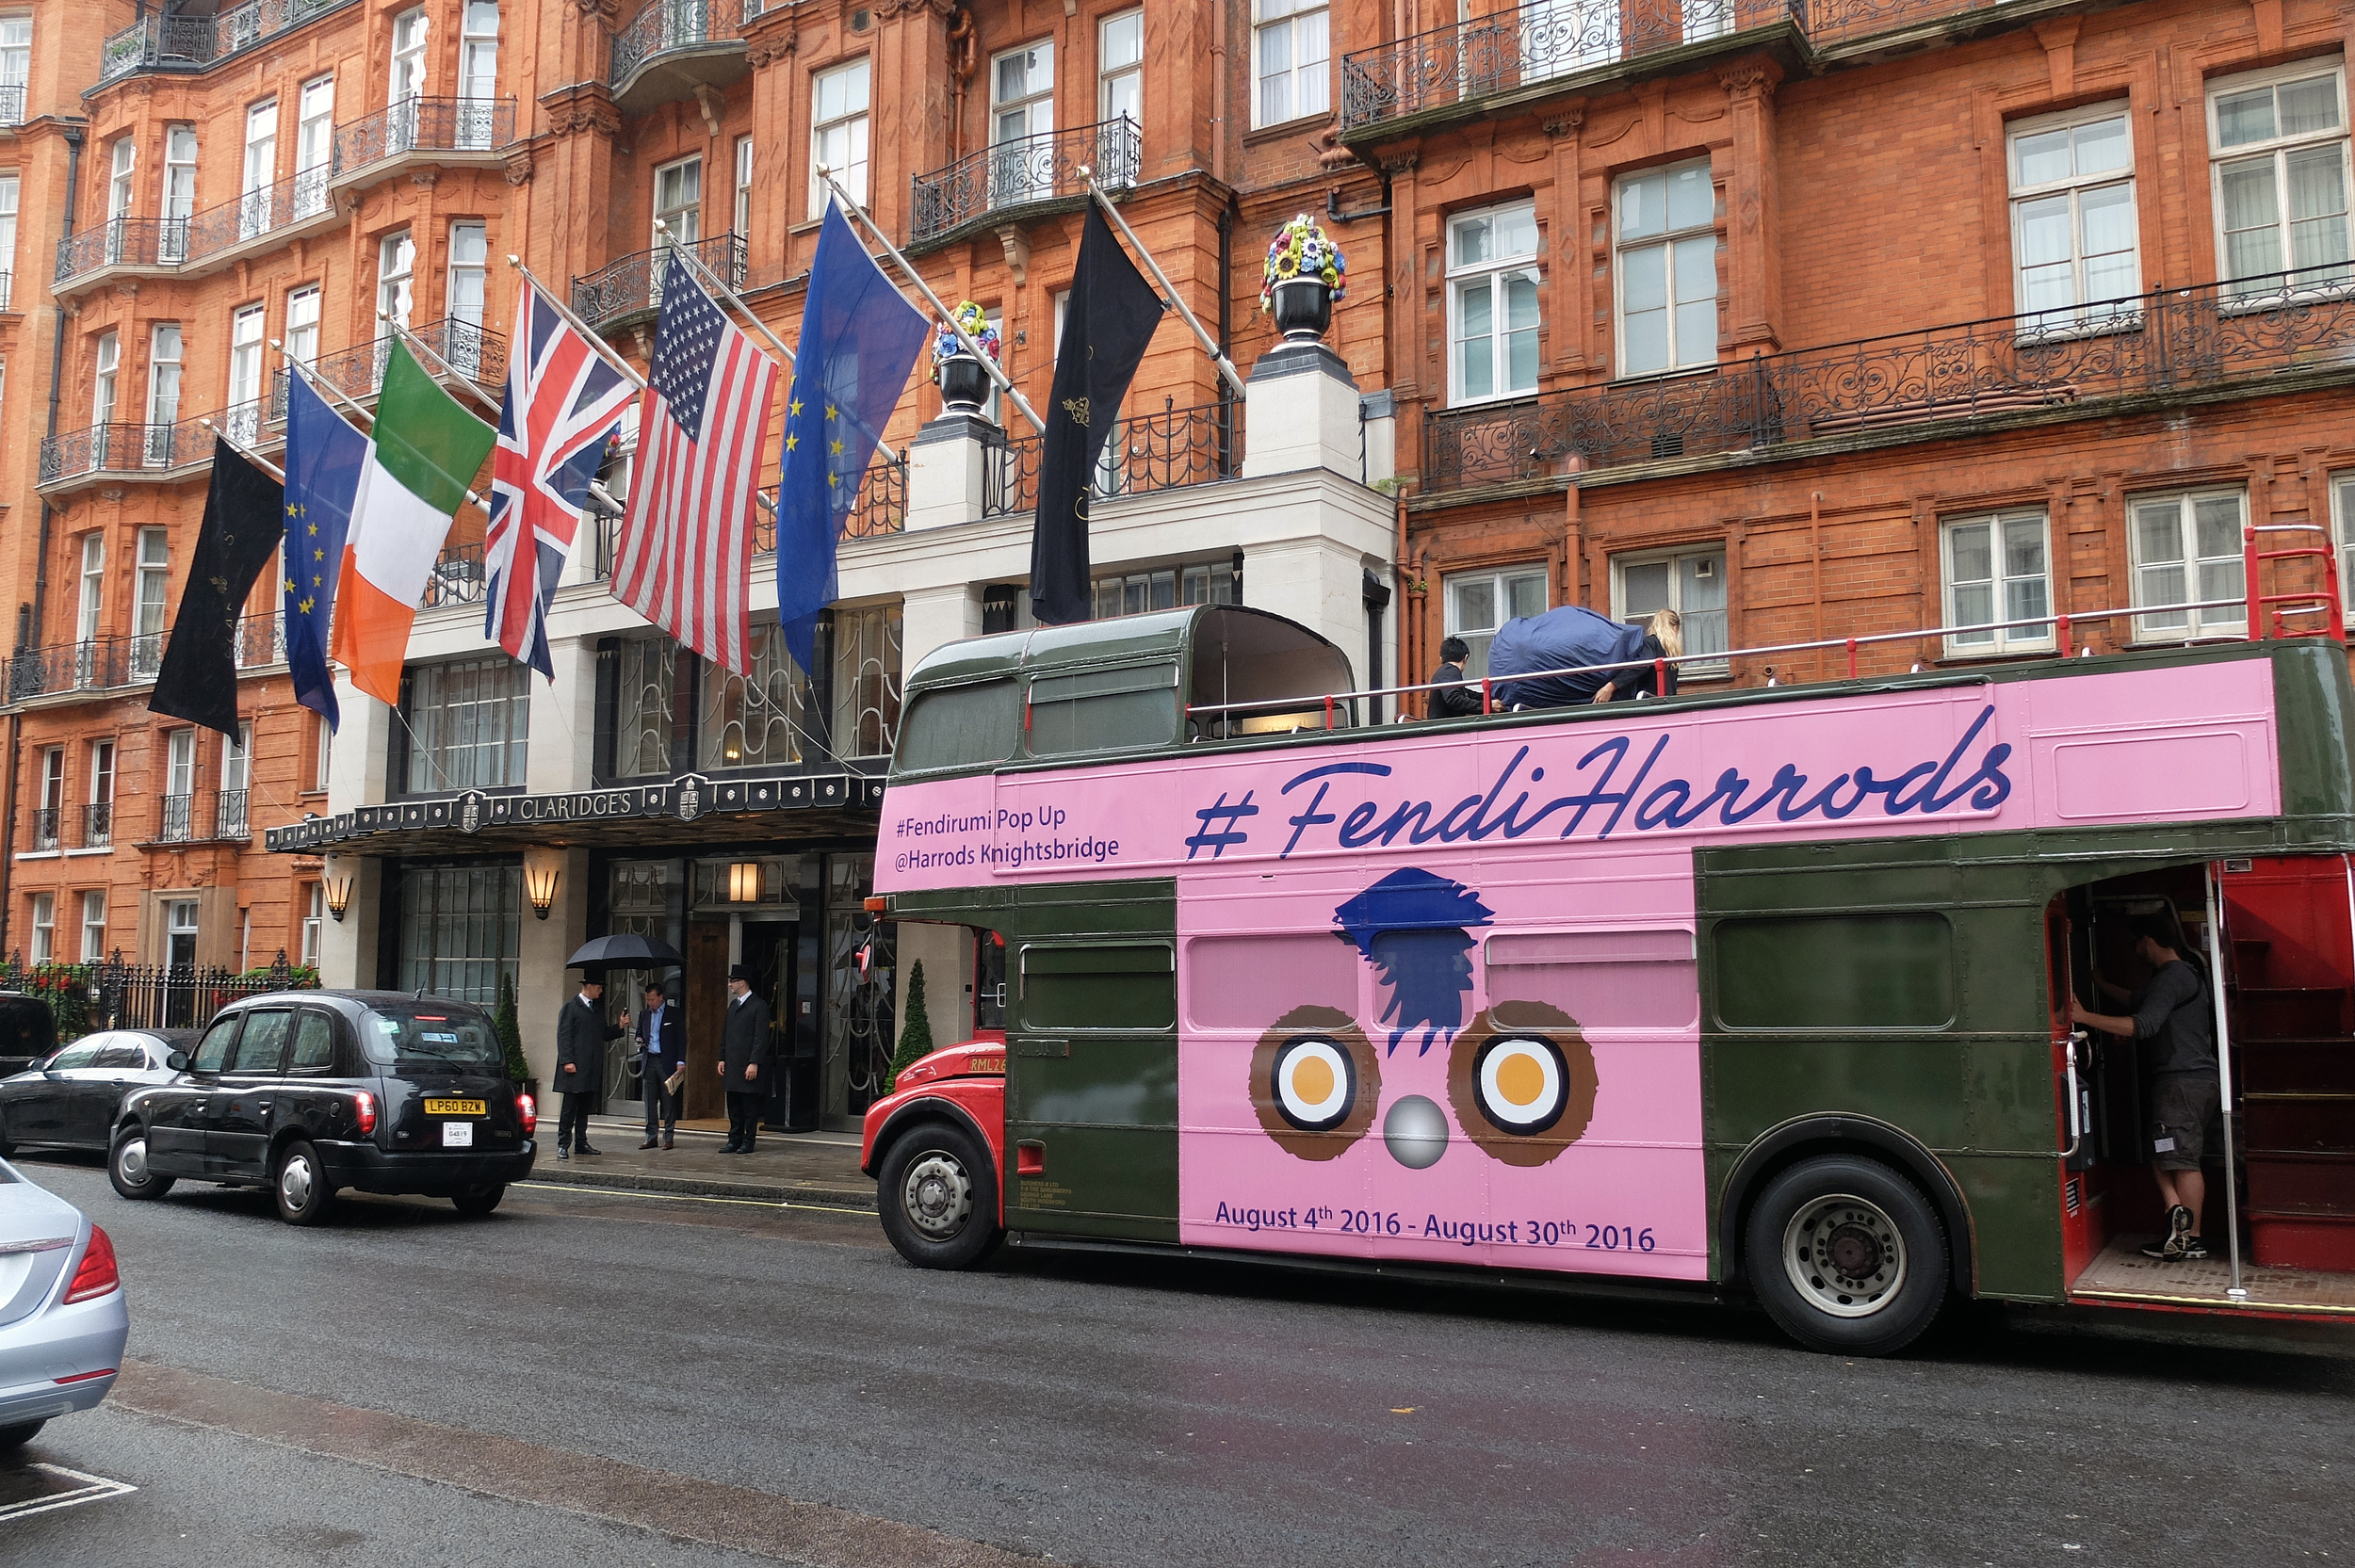 Harrods - Fendi Bus Tour